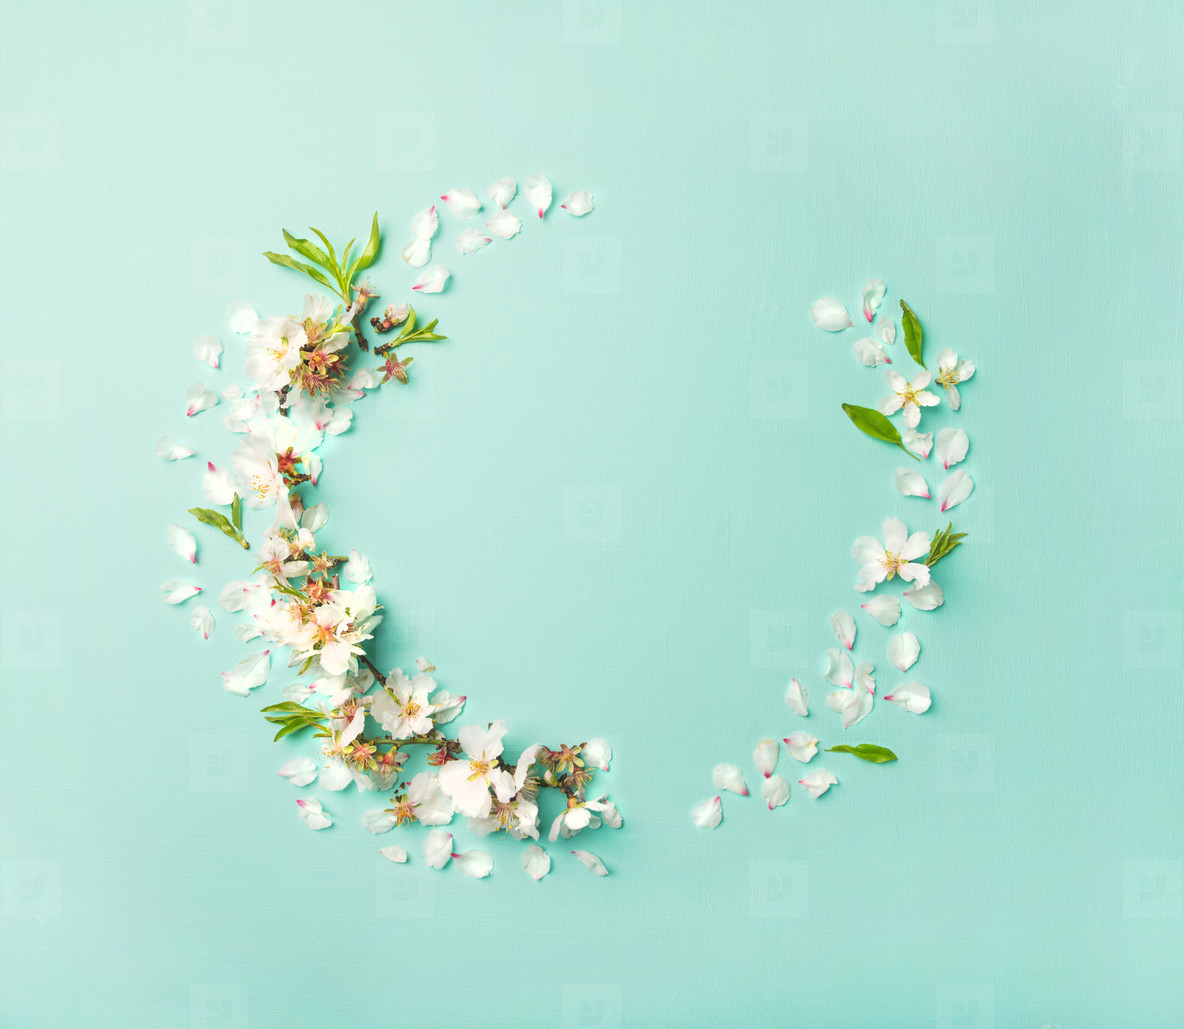 Flat lay of white almond blossom flowers wreath